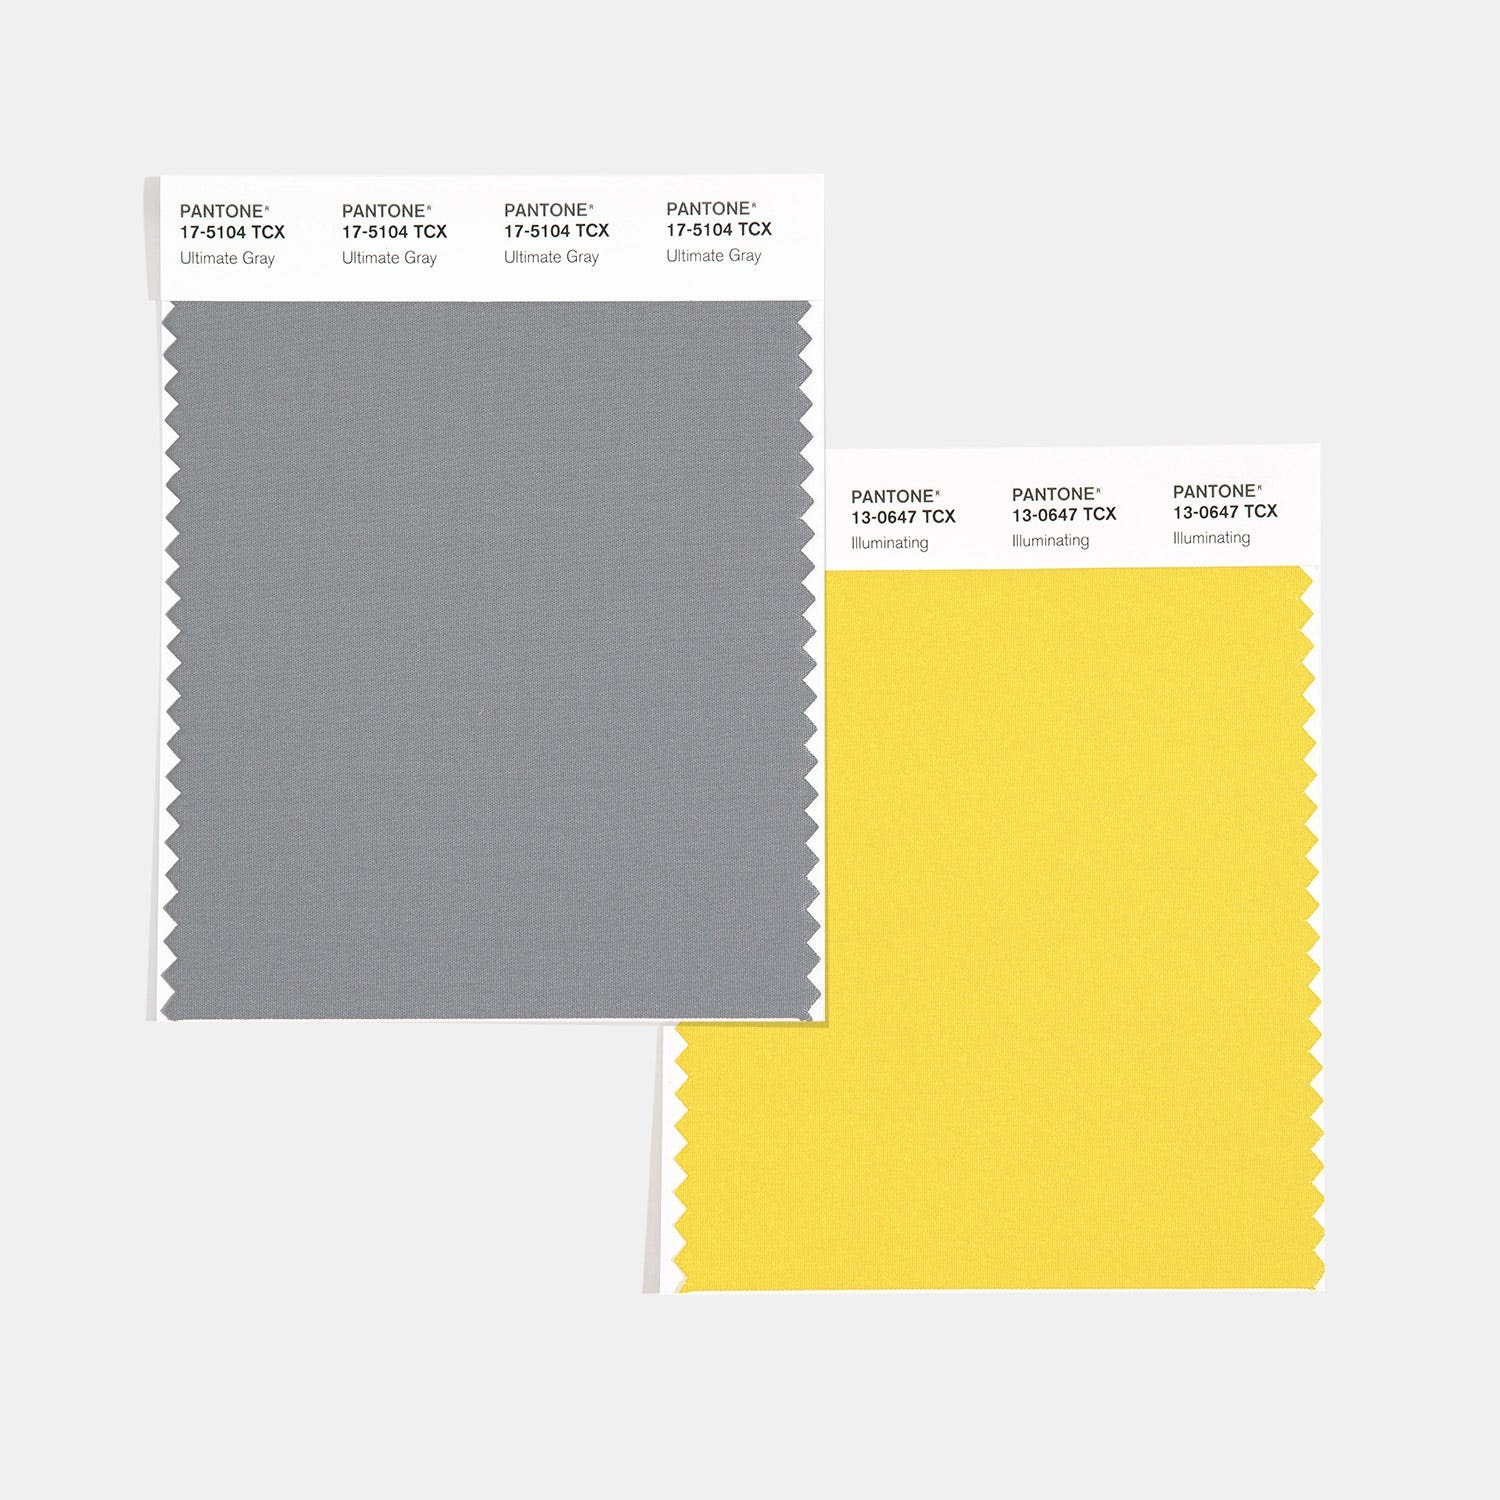 Pantone Merilis Ultimate Gray sebagai Color of The Year 2021 dengan  Kombinasi Warna Lain Yakni Illuminating - Whiteboard Journal